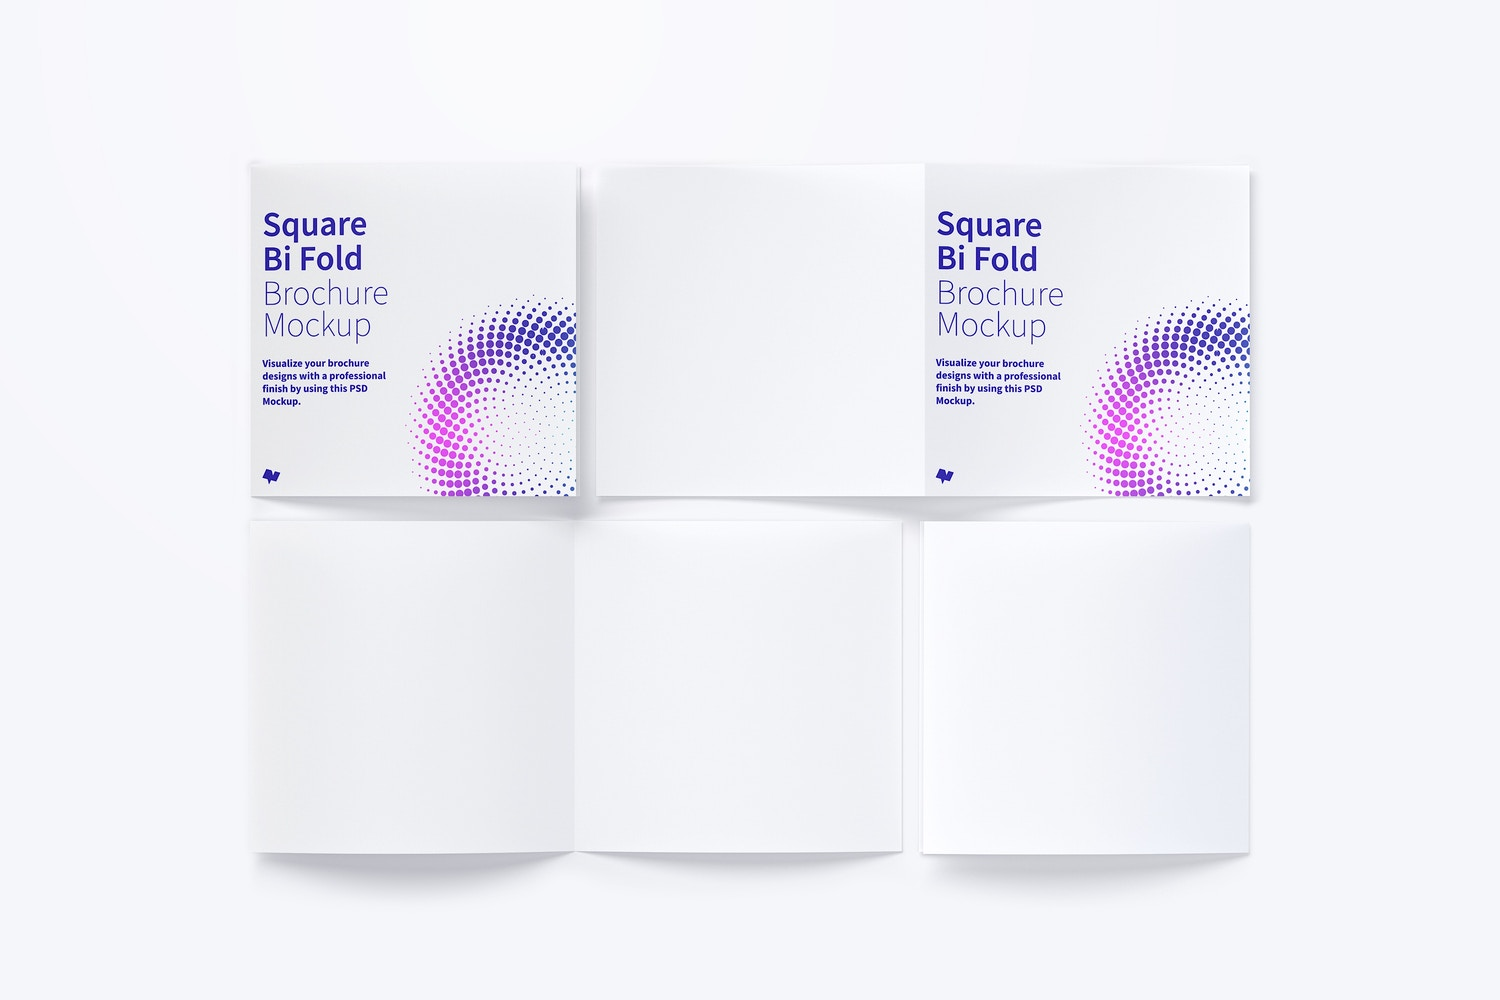 Square Bi Fold Brochure Mockup 04 by Original Mockups on Original Mockups